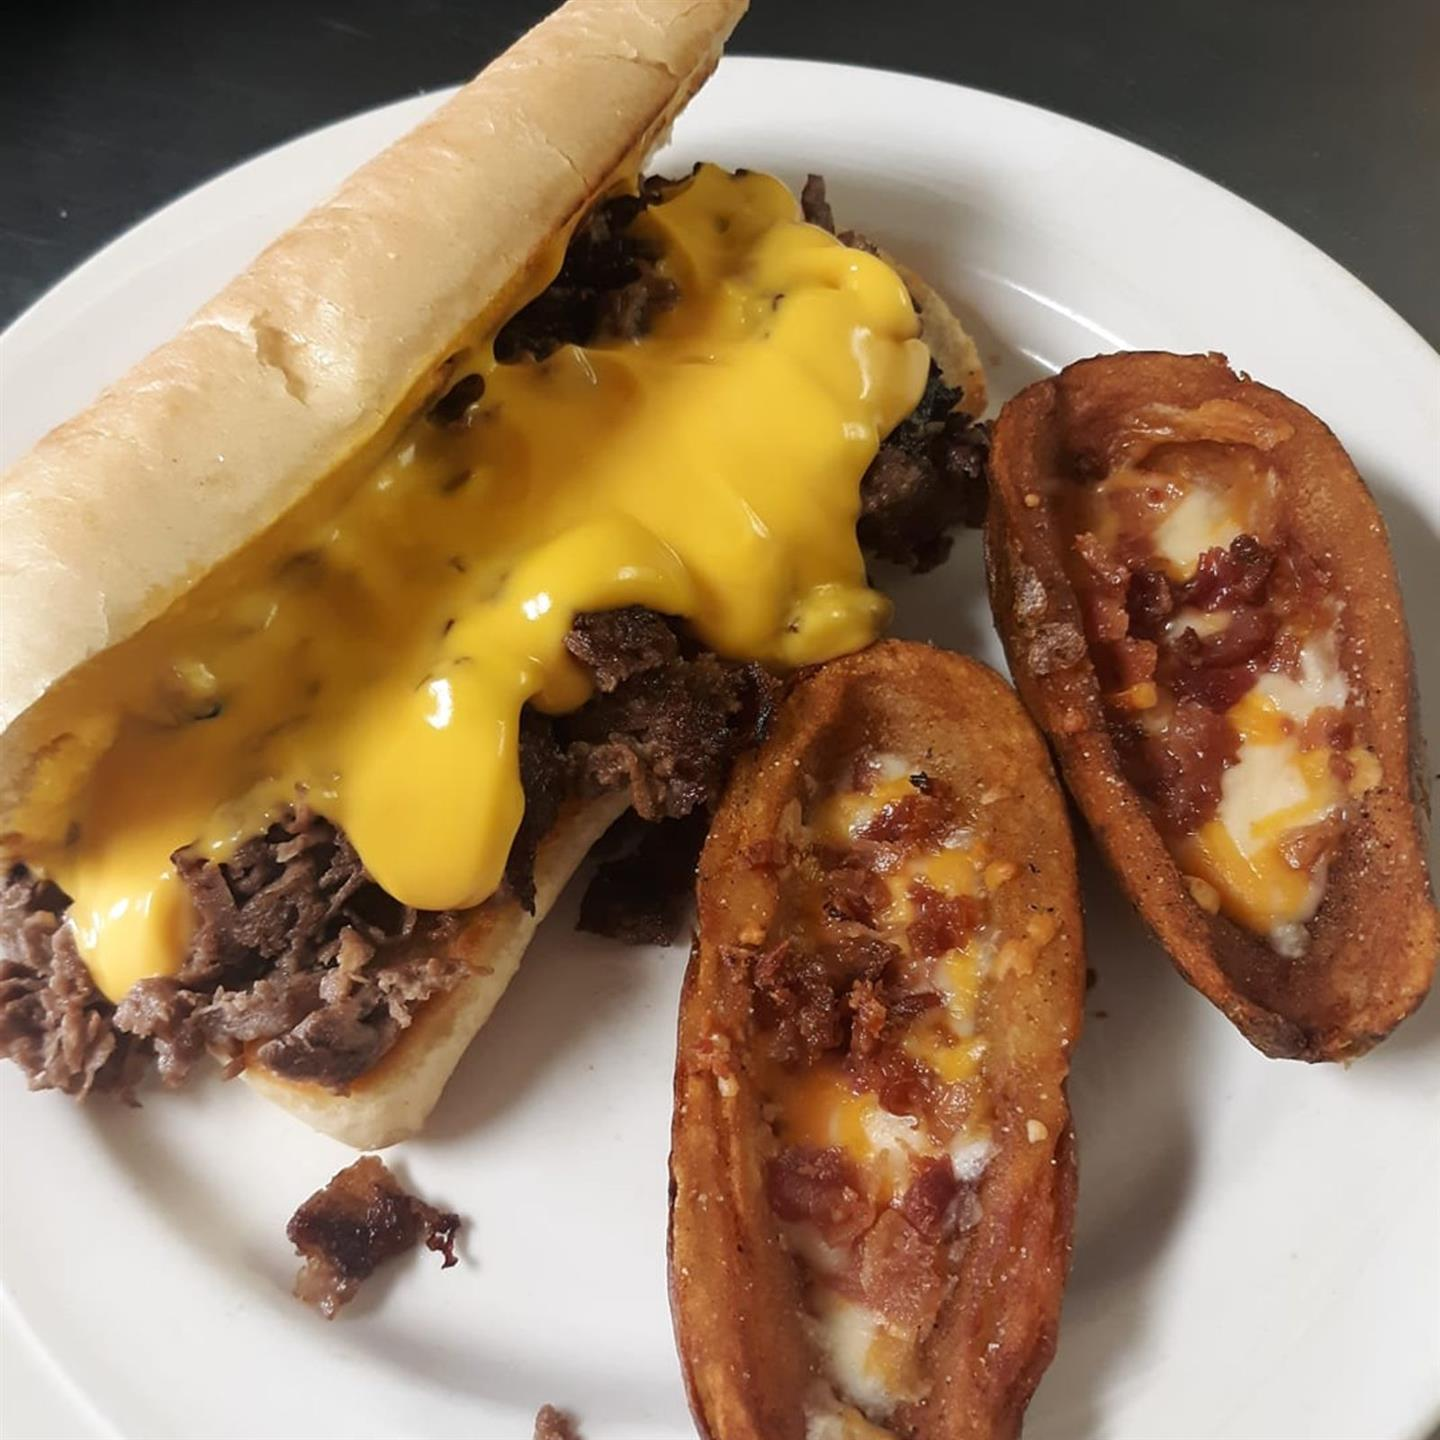 philly cheesesteak with a side of baked potatoes